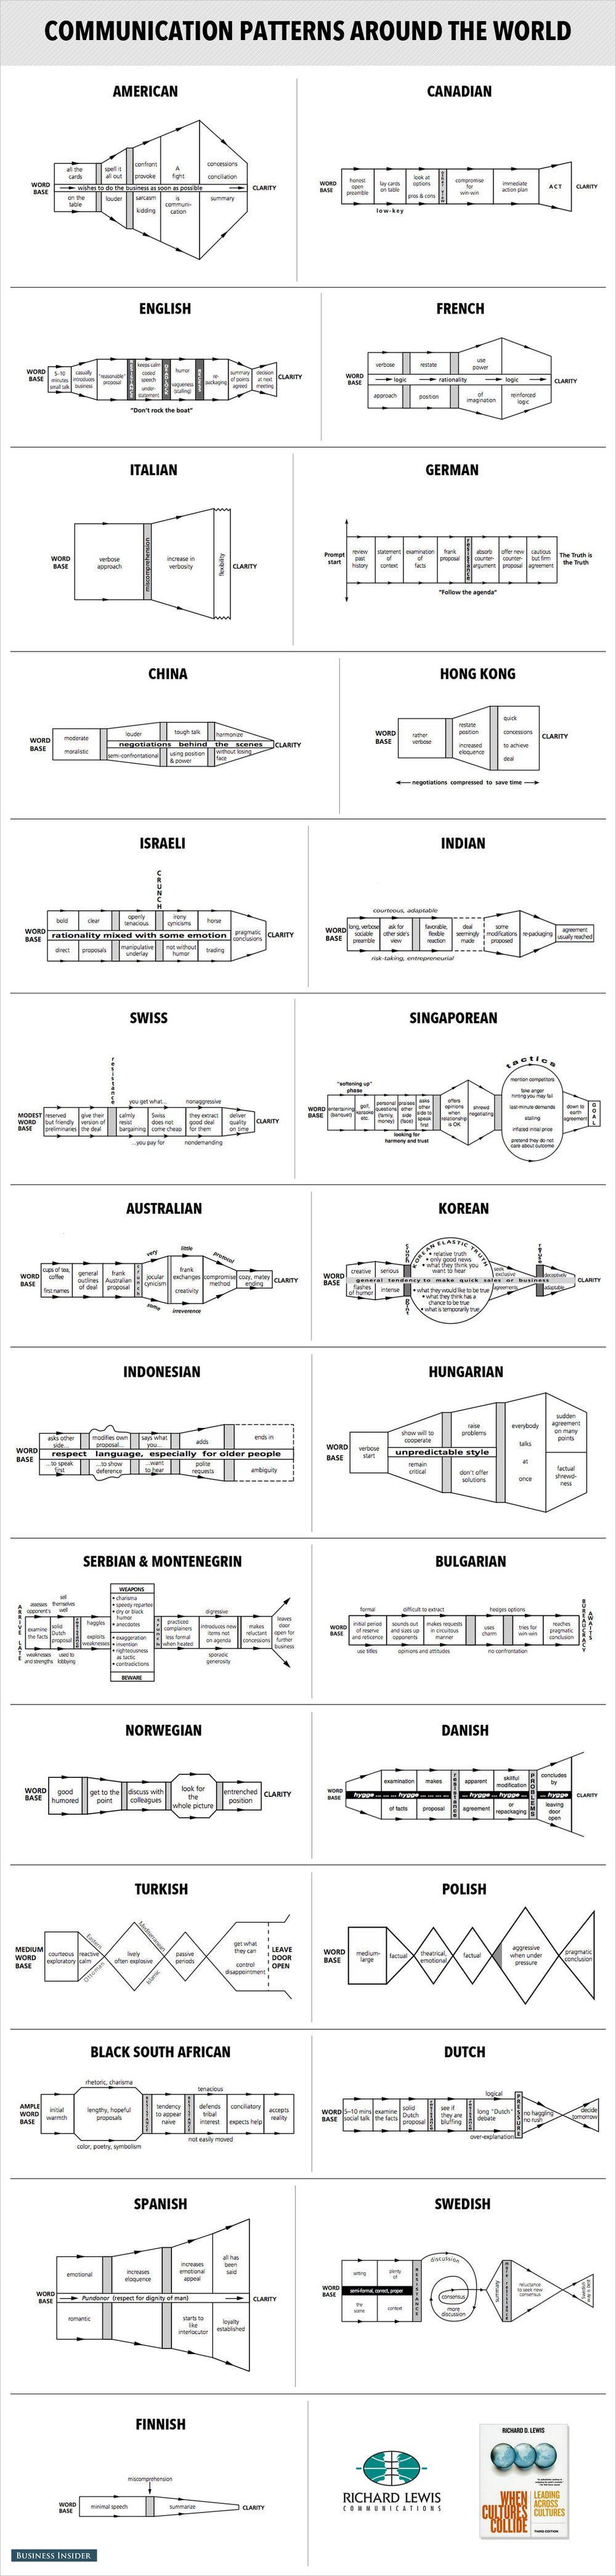 communication patterns around the world Richard Lewis